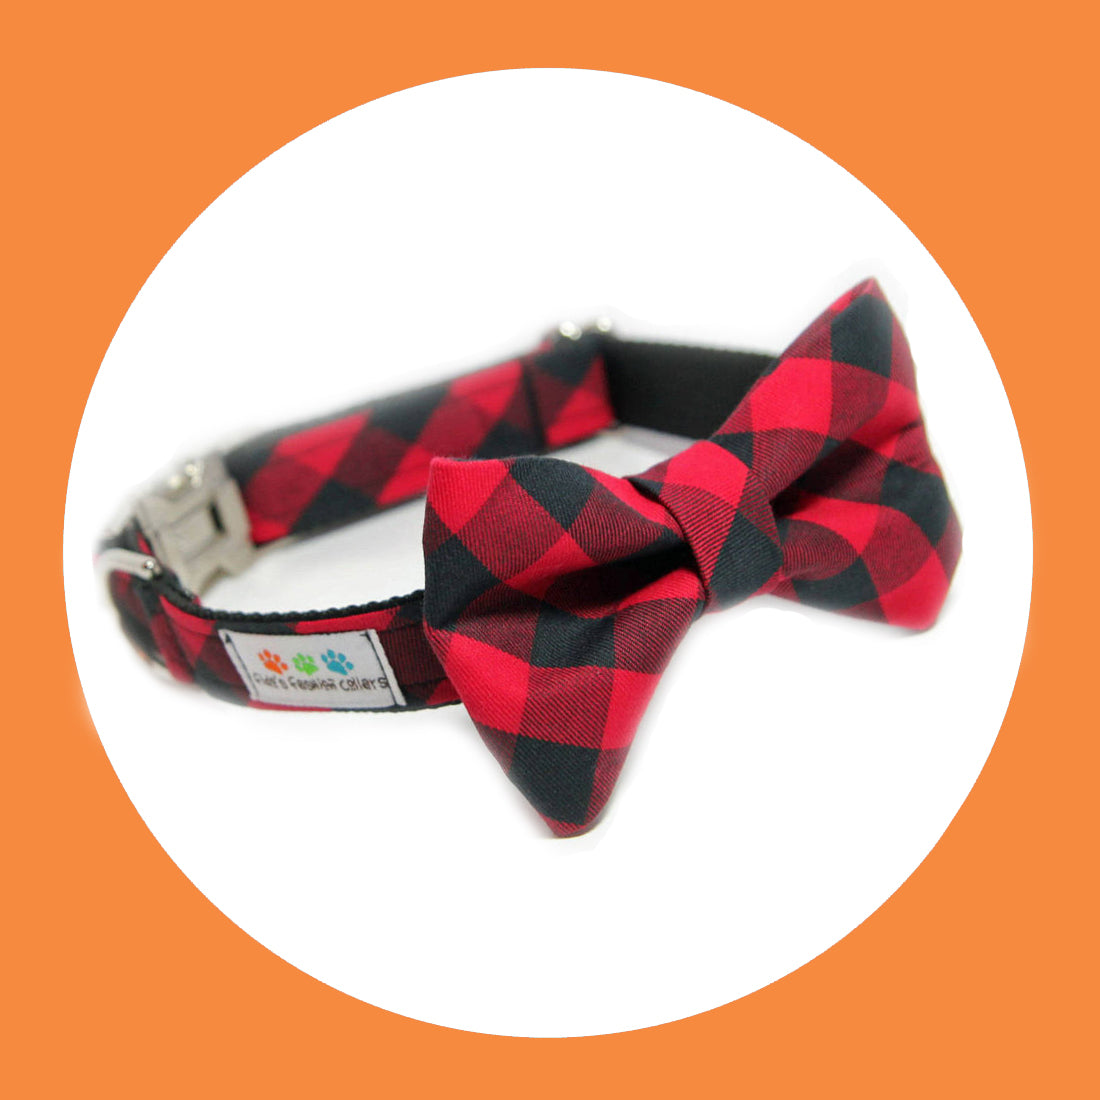 collections/buffalobowtie.jpg